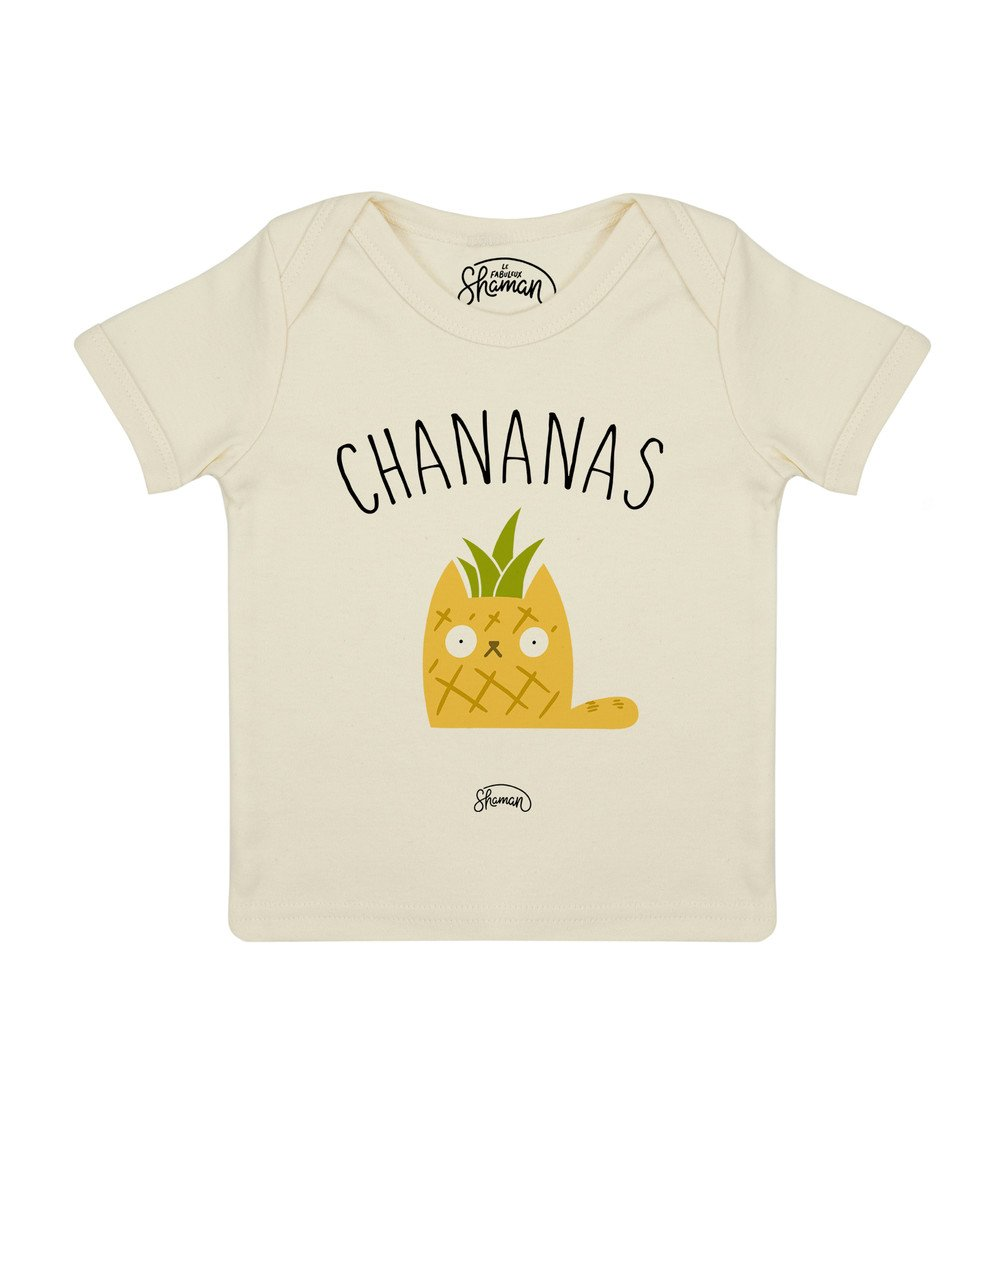 Tee shirt Chananas